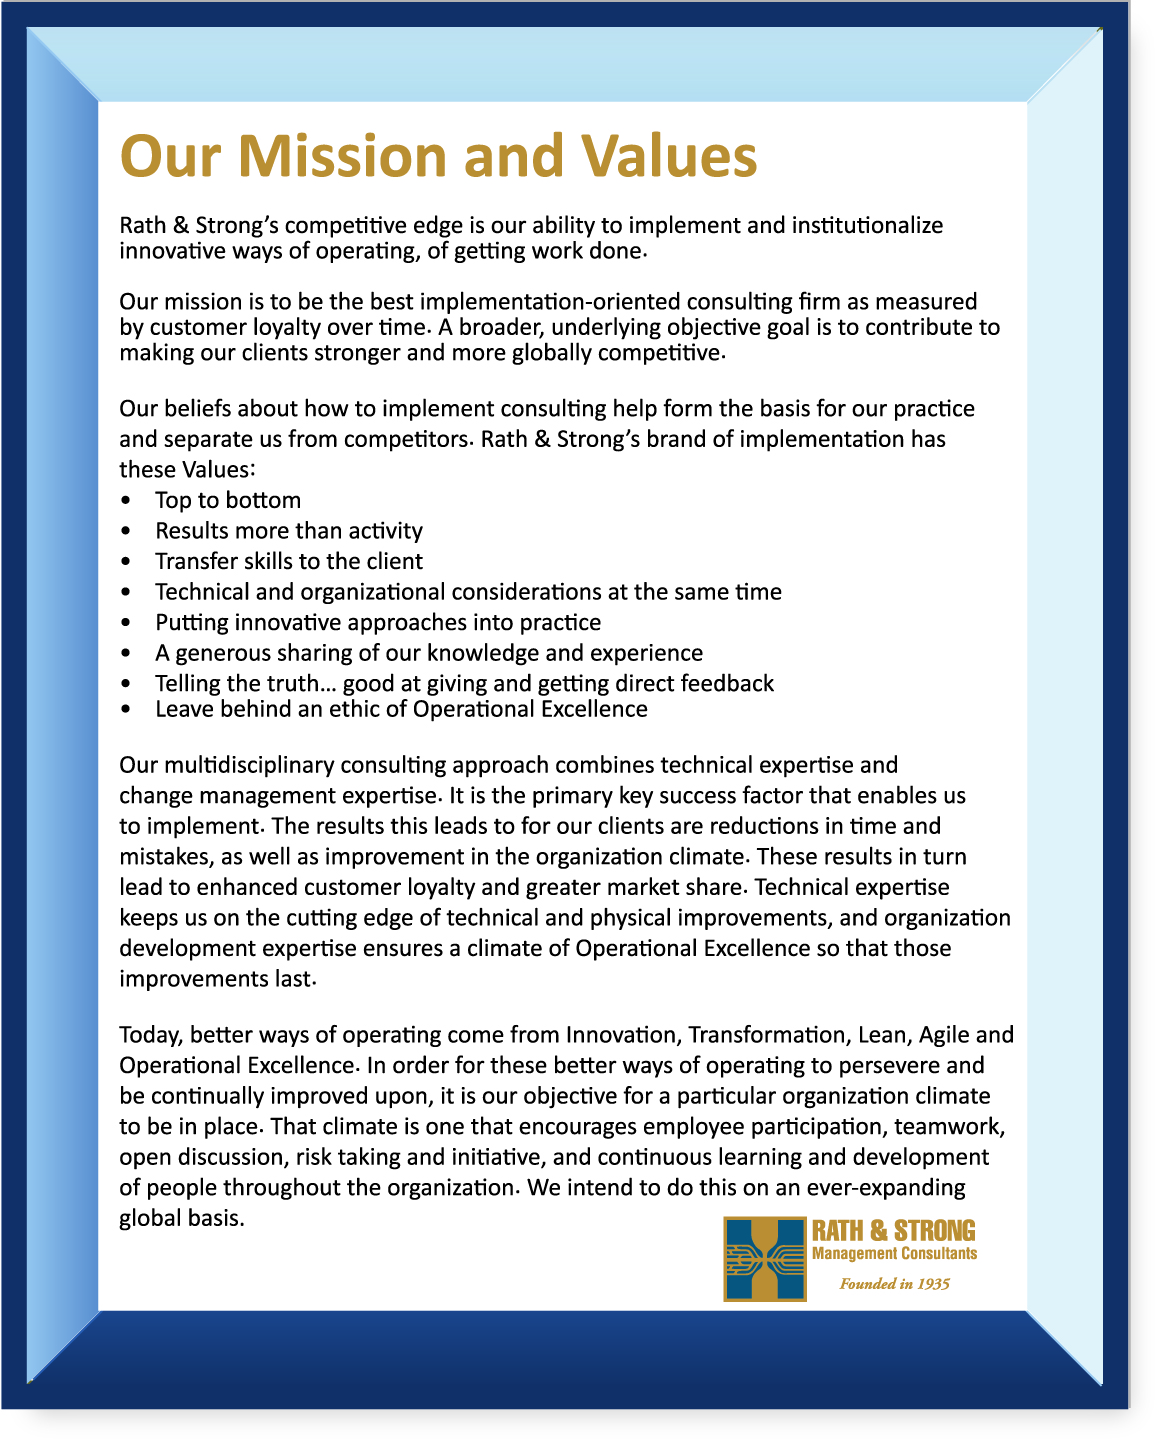 Our_Mission__Values20170420100047